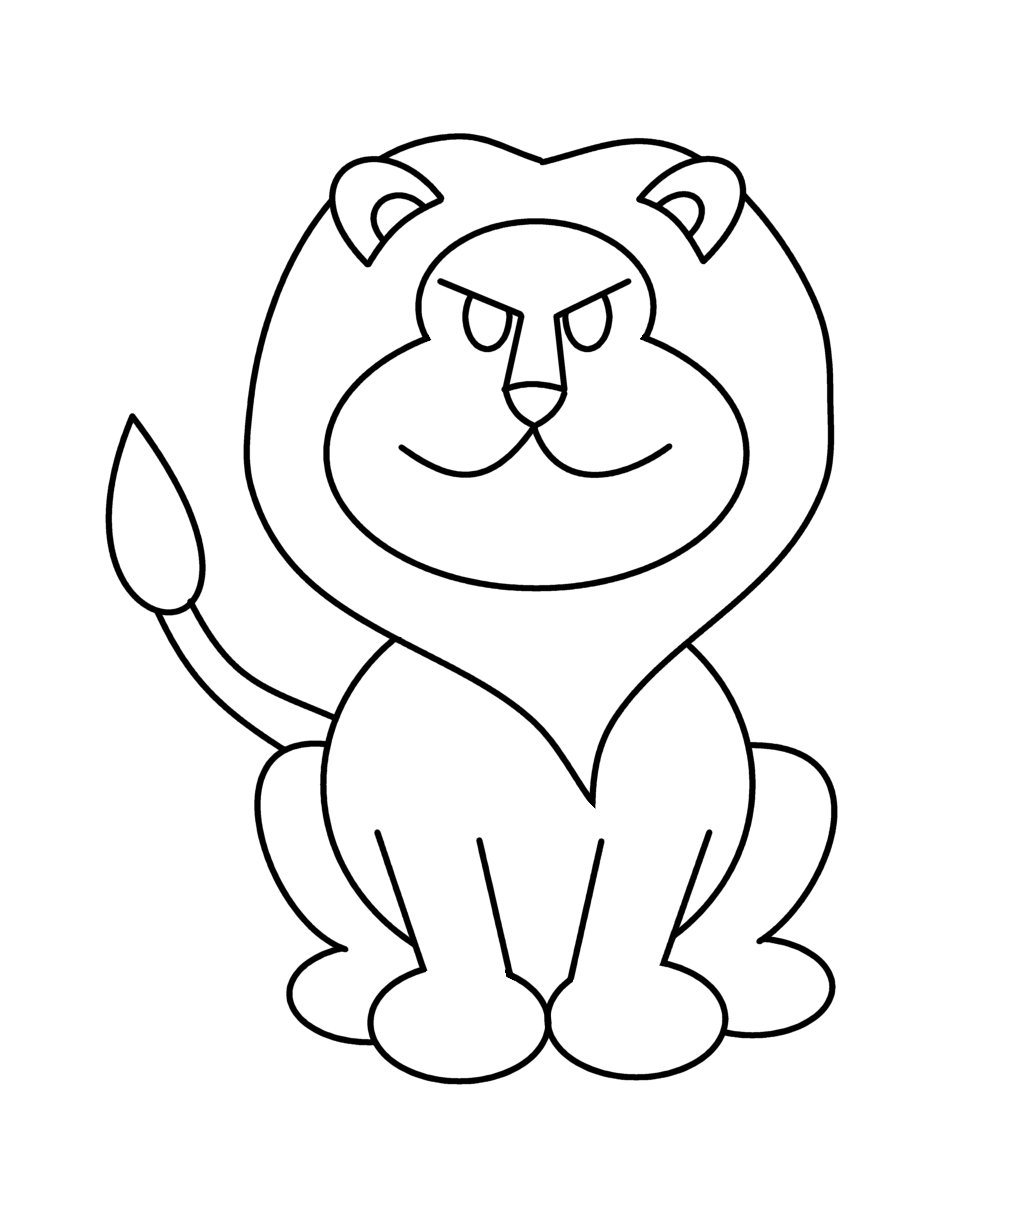 1026x1206 Cartoon Drawing Of A Lion How To Draw Cartoons Lion